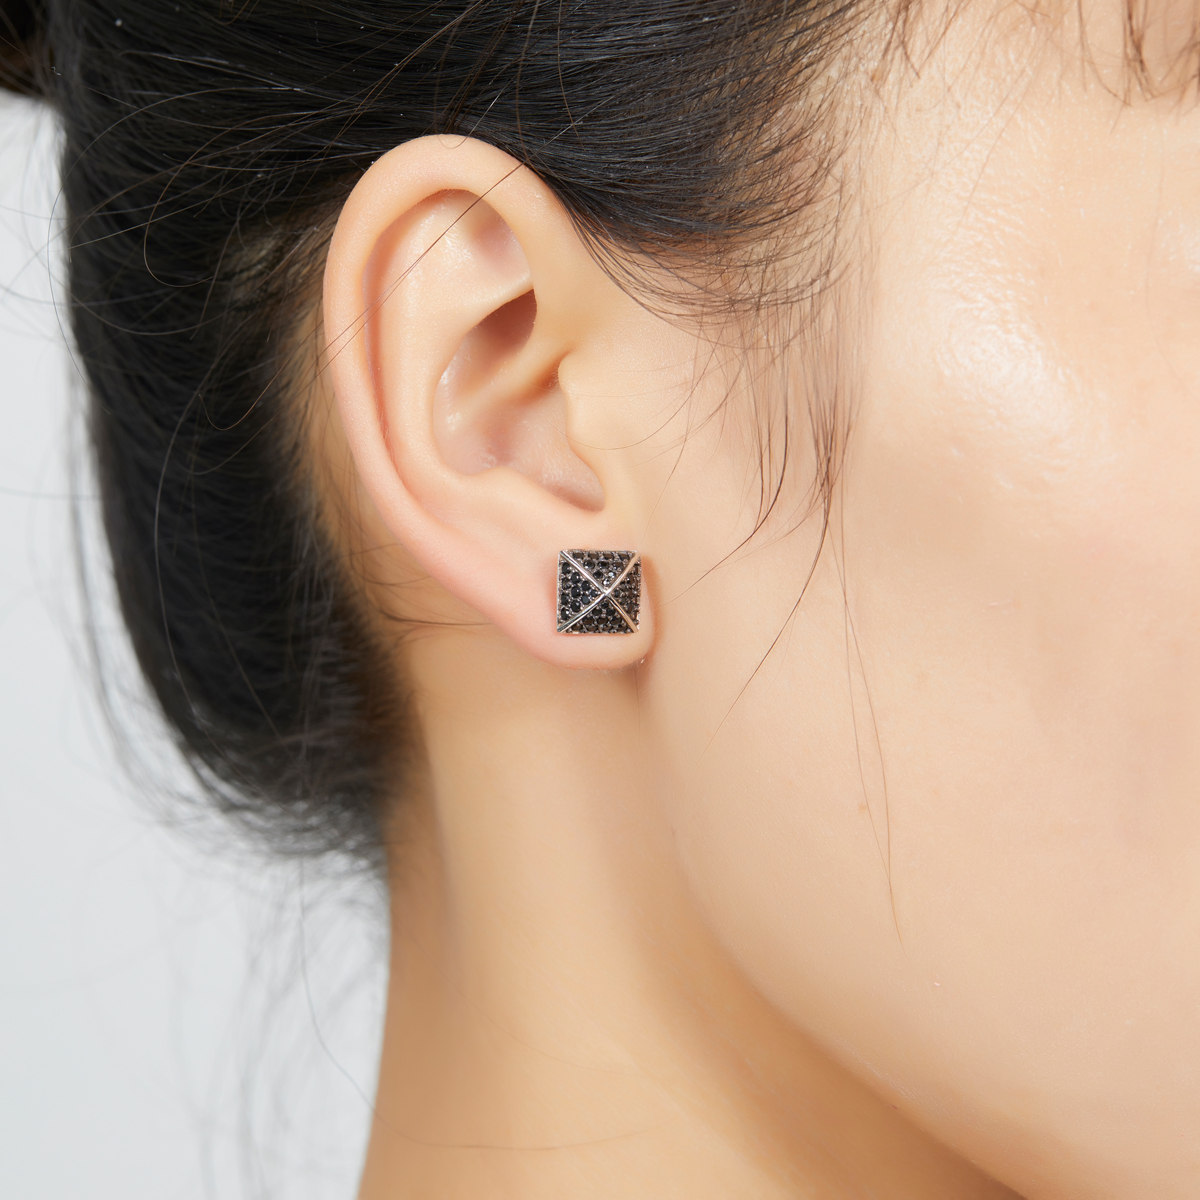 Hutang Natural Black Spinel Stud Earrings Solid 925 Sterling Silver Pyramid Design Jewelry For Women Best Gift видео няня switel bcf986